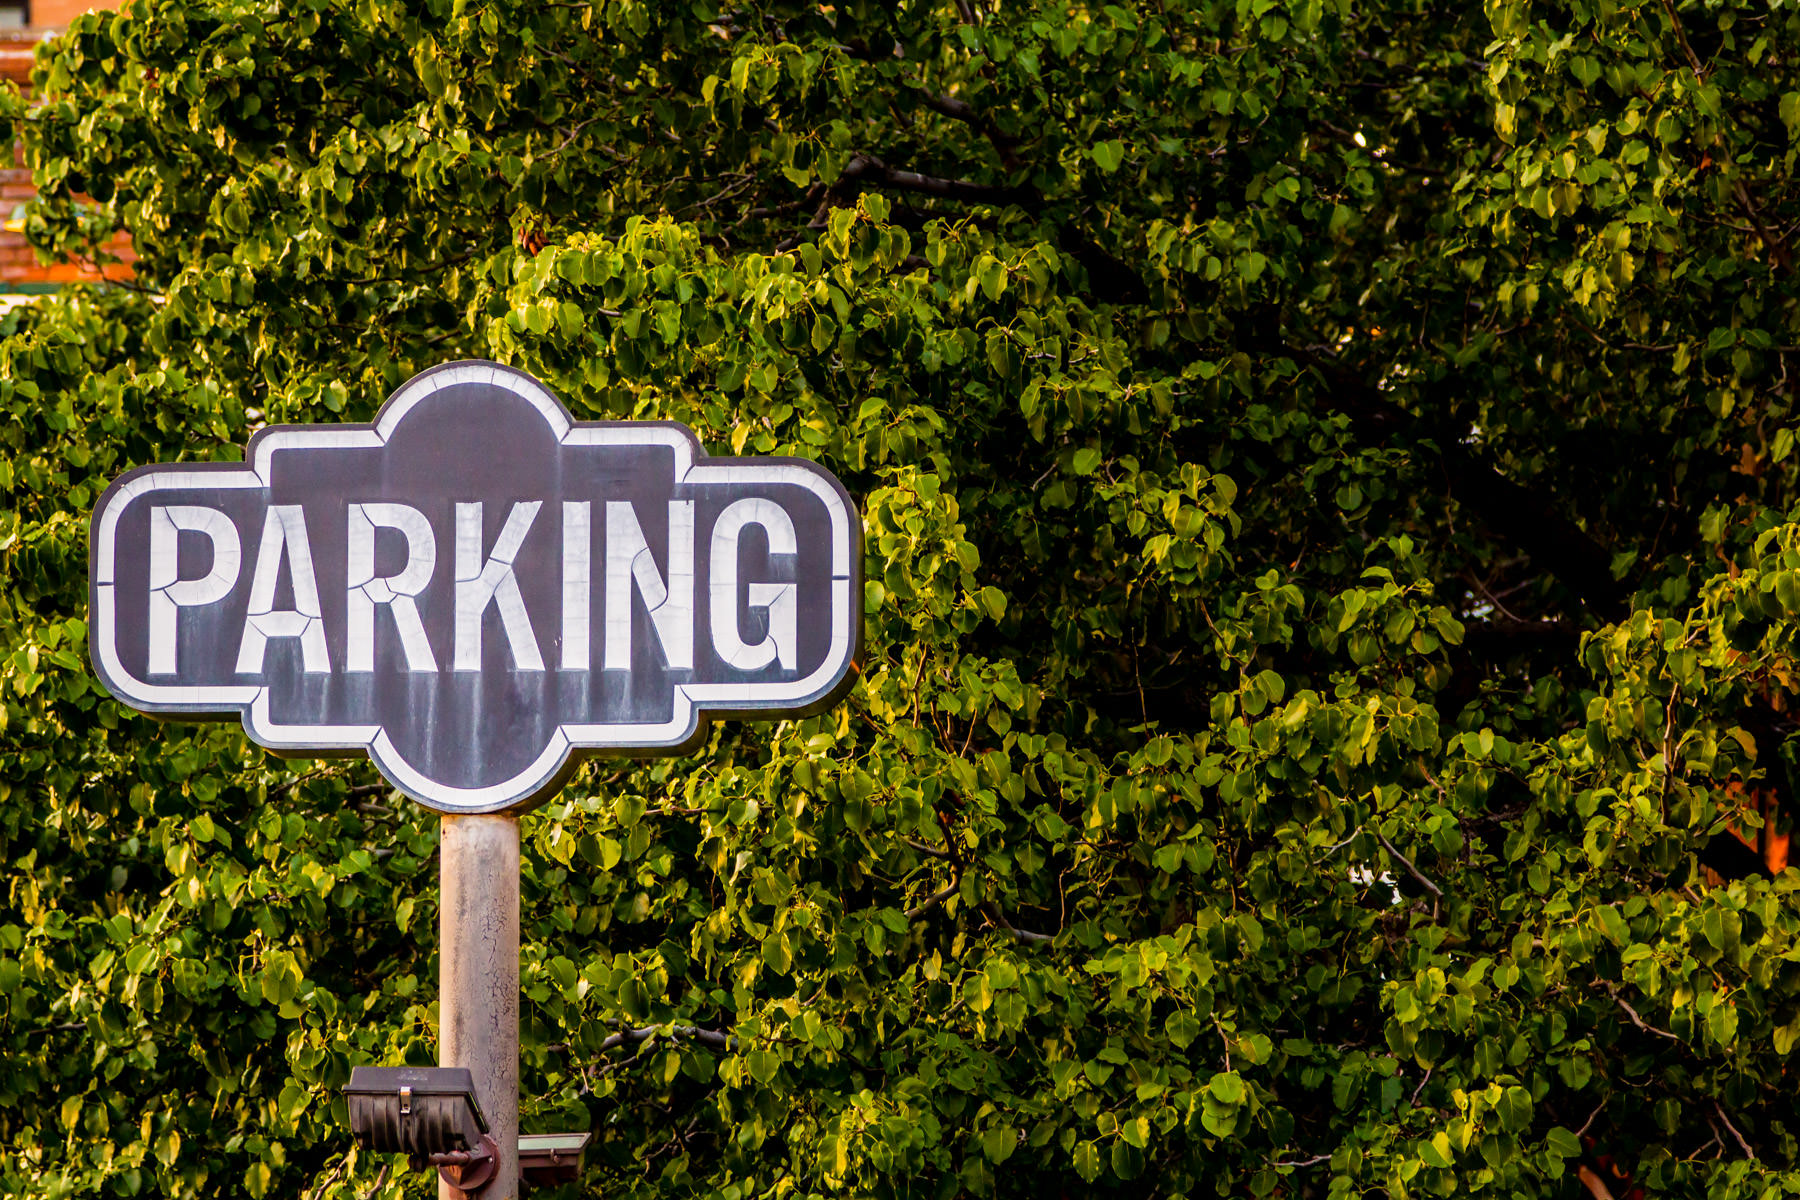 A sign advertising parking in Dallas' West End district.